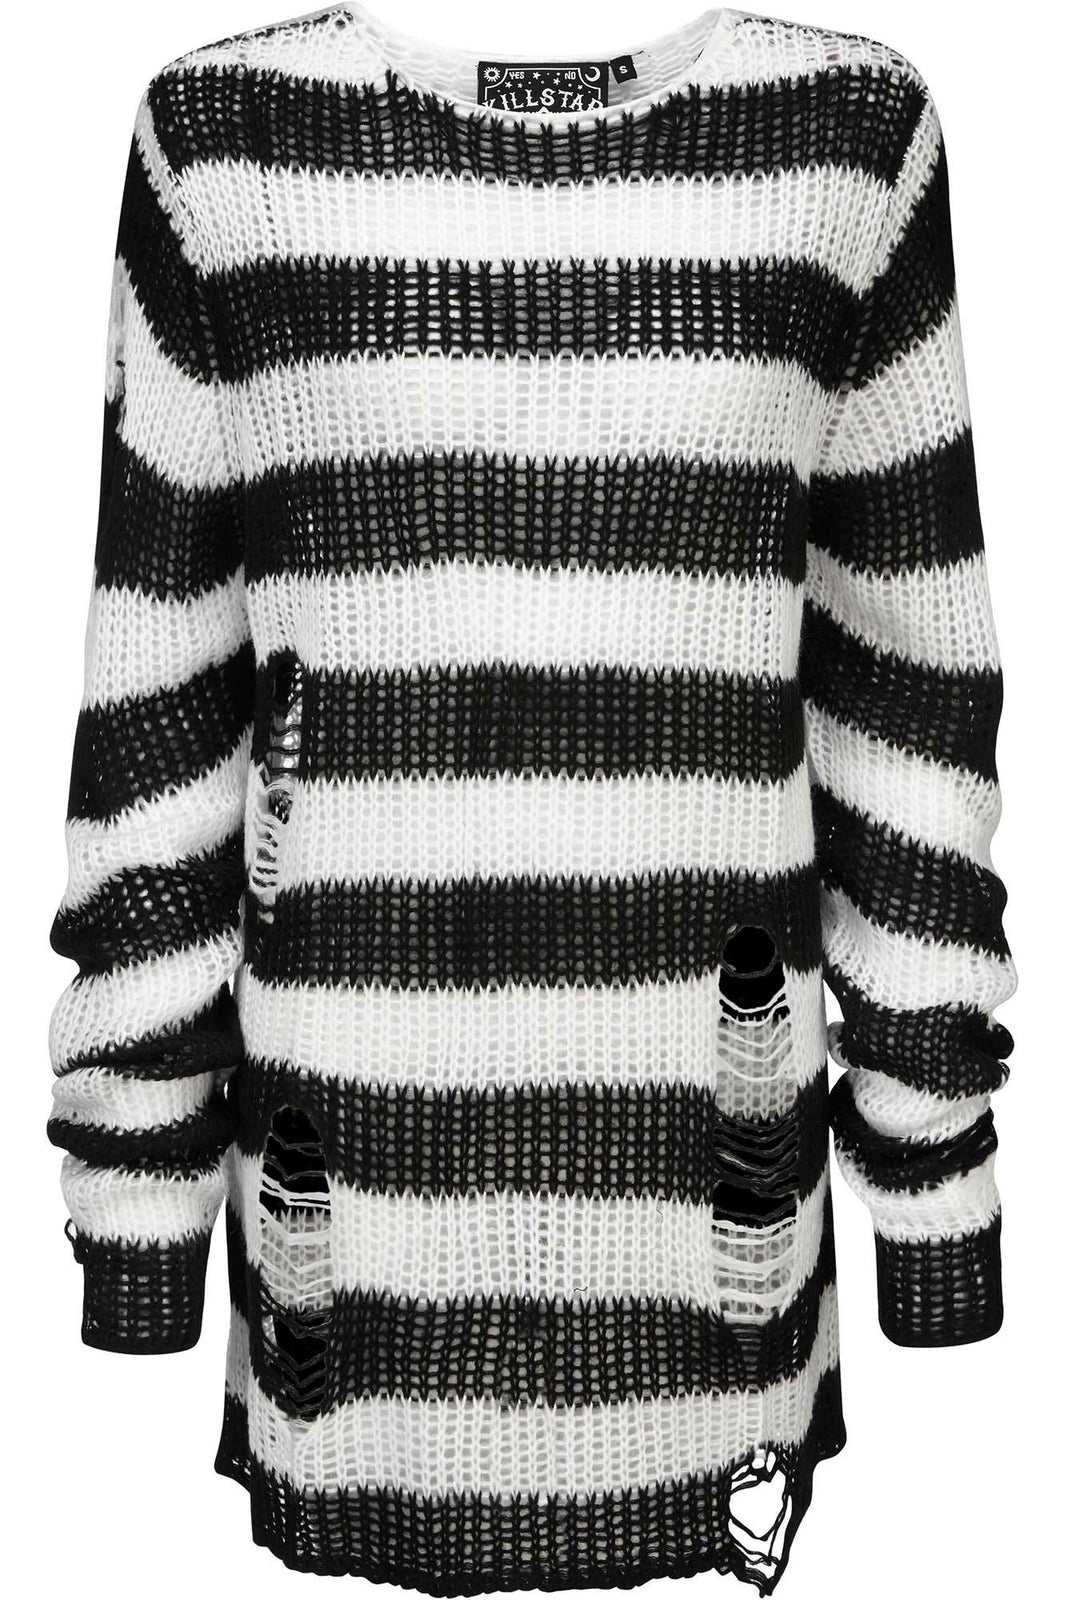 Pugsley Knit Sweater [B]